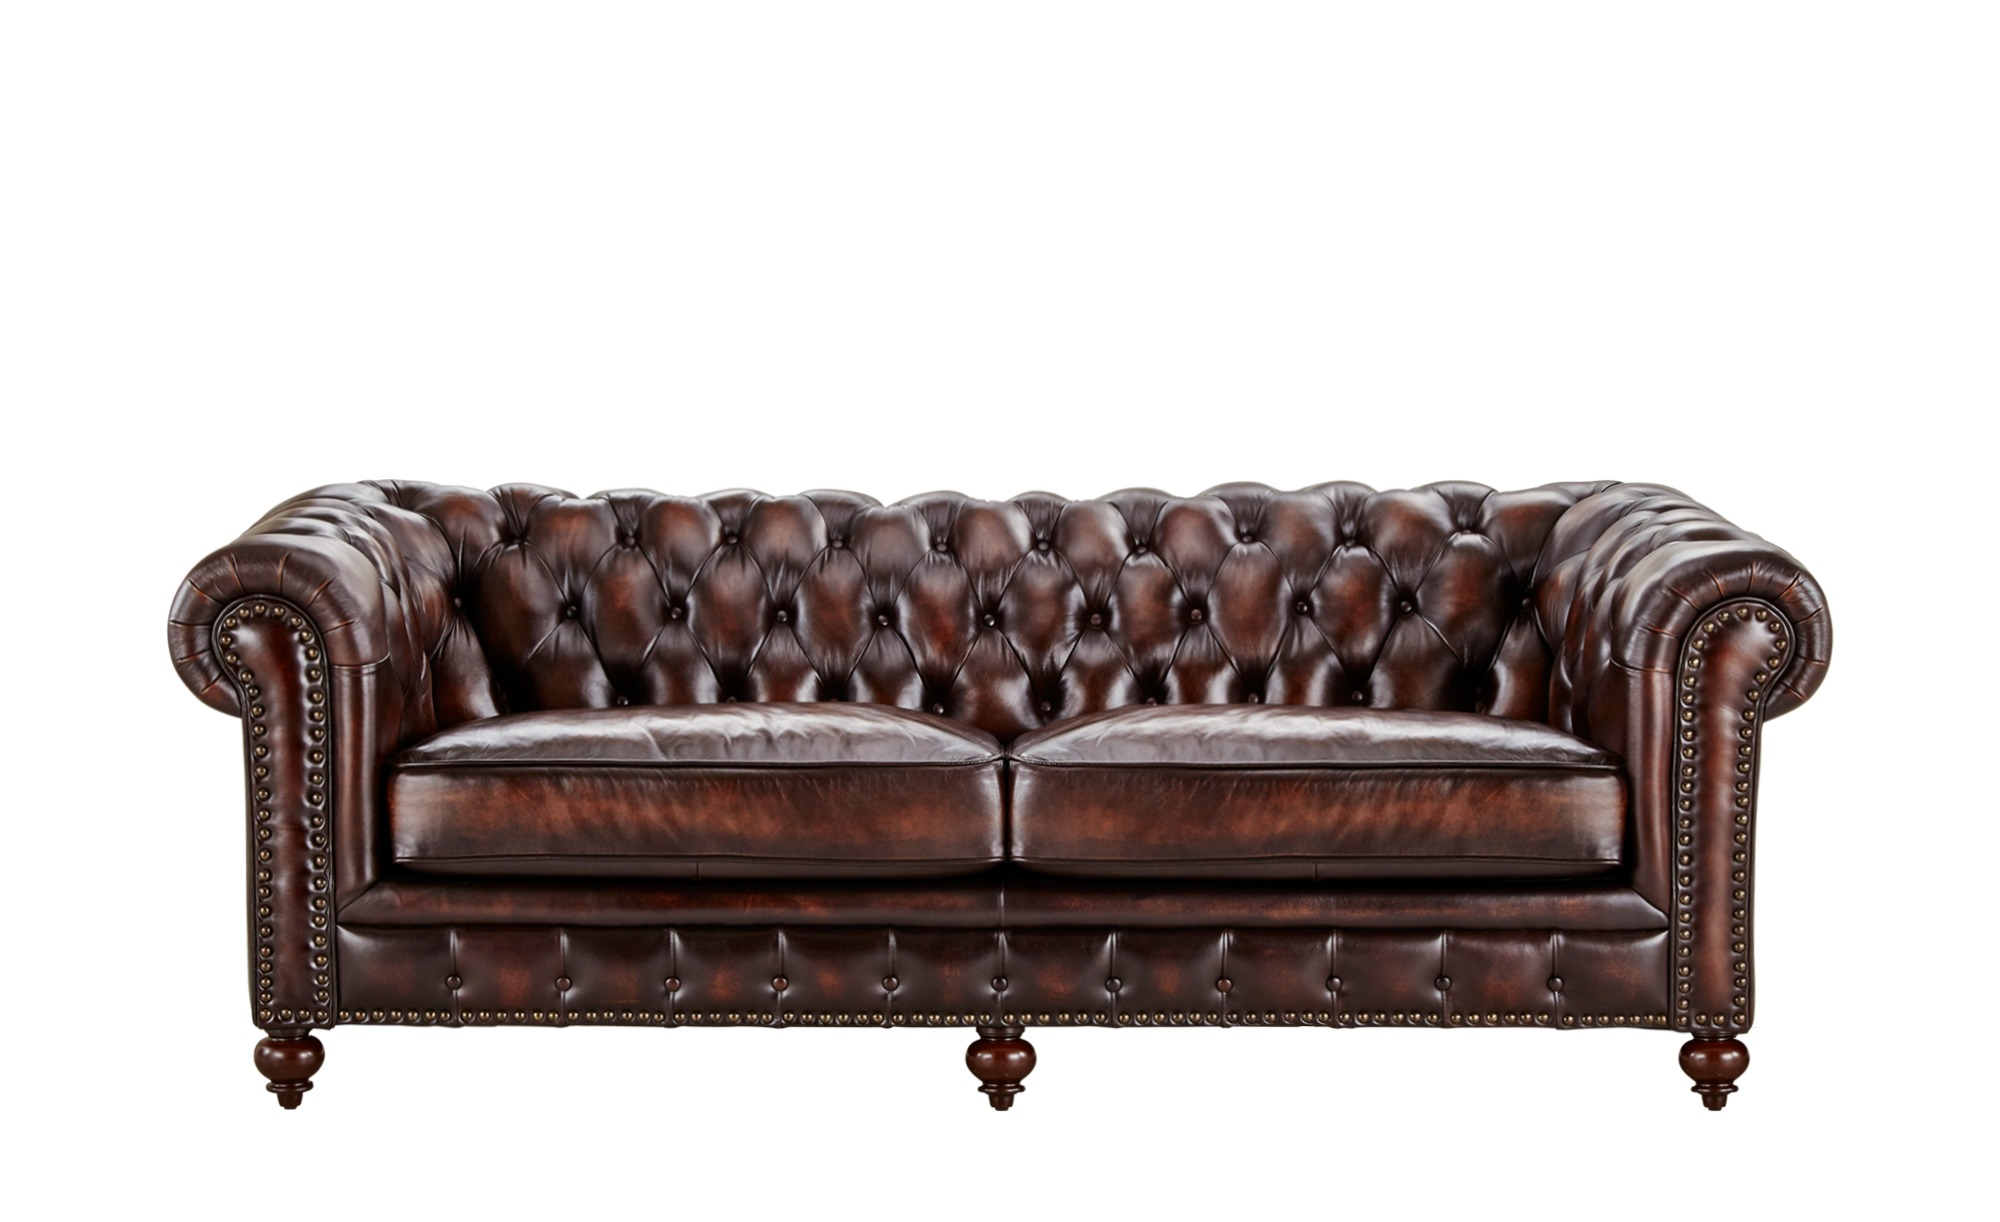 Couch Echtleder Chesterfield Sofa Echtleder For The Home Sofa Chesterfield